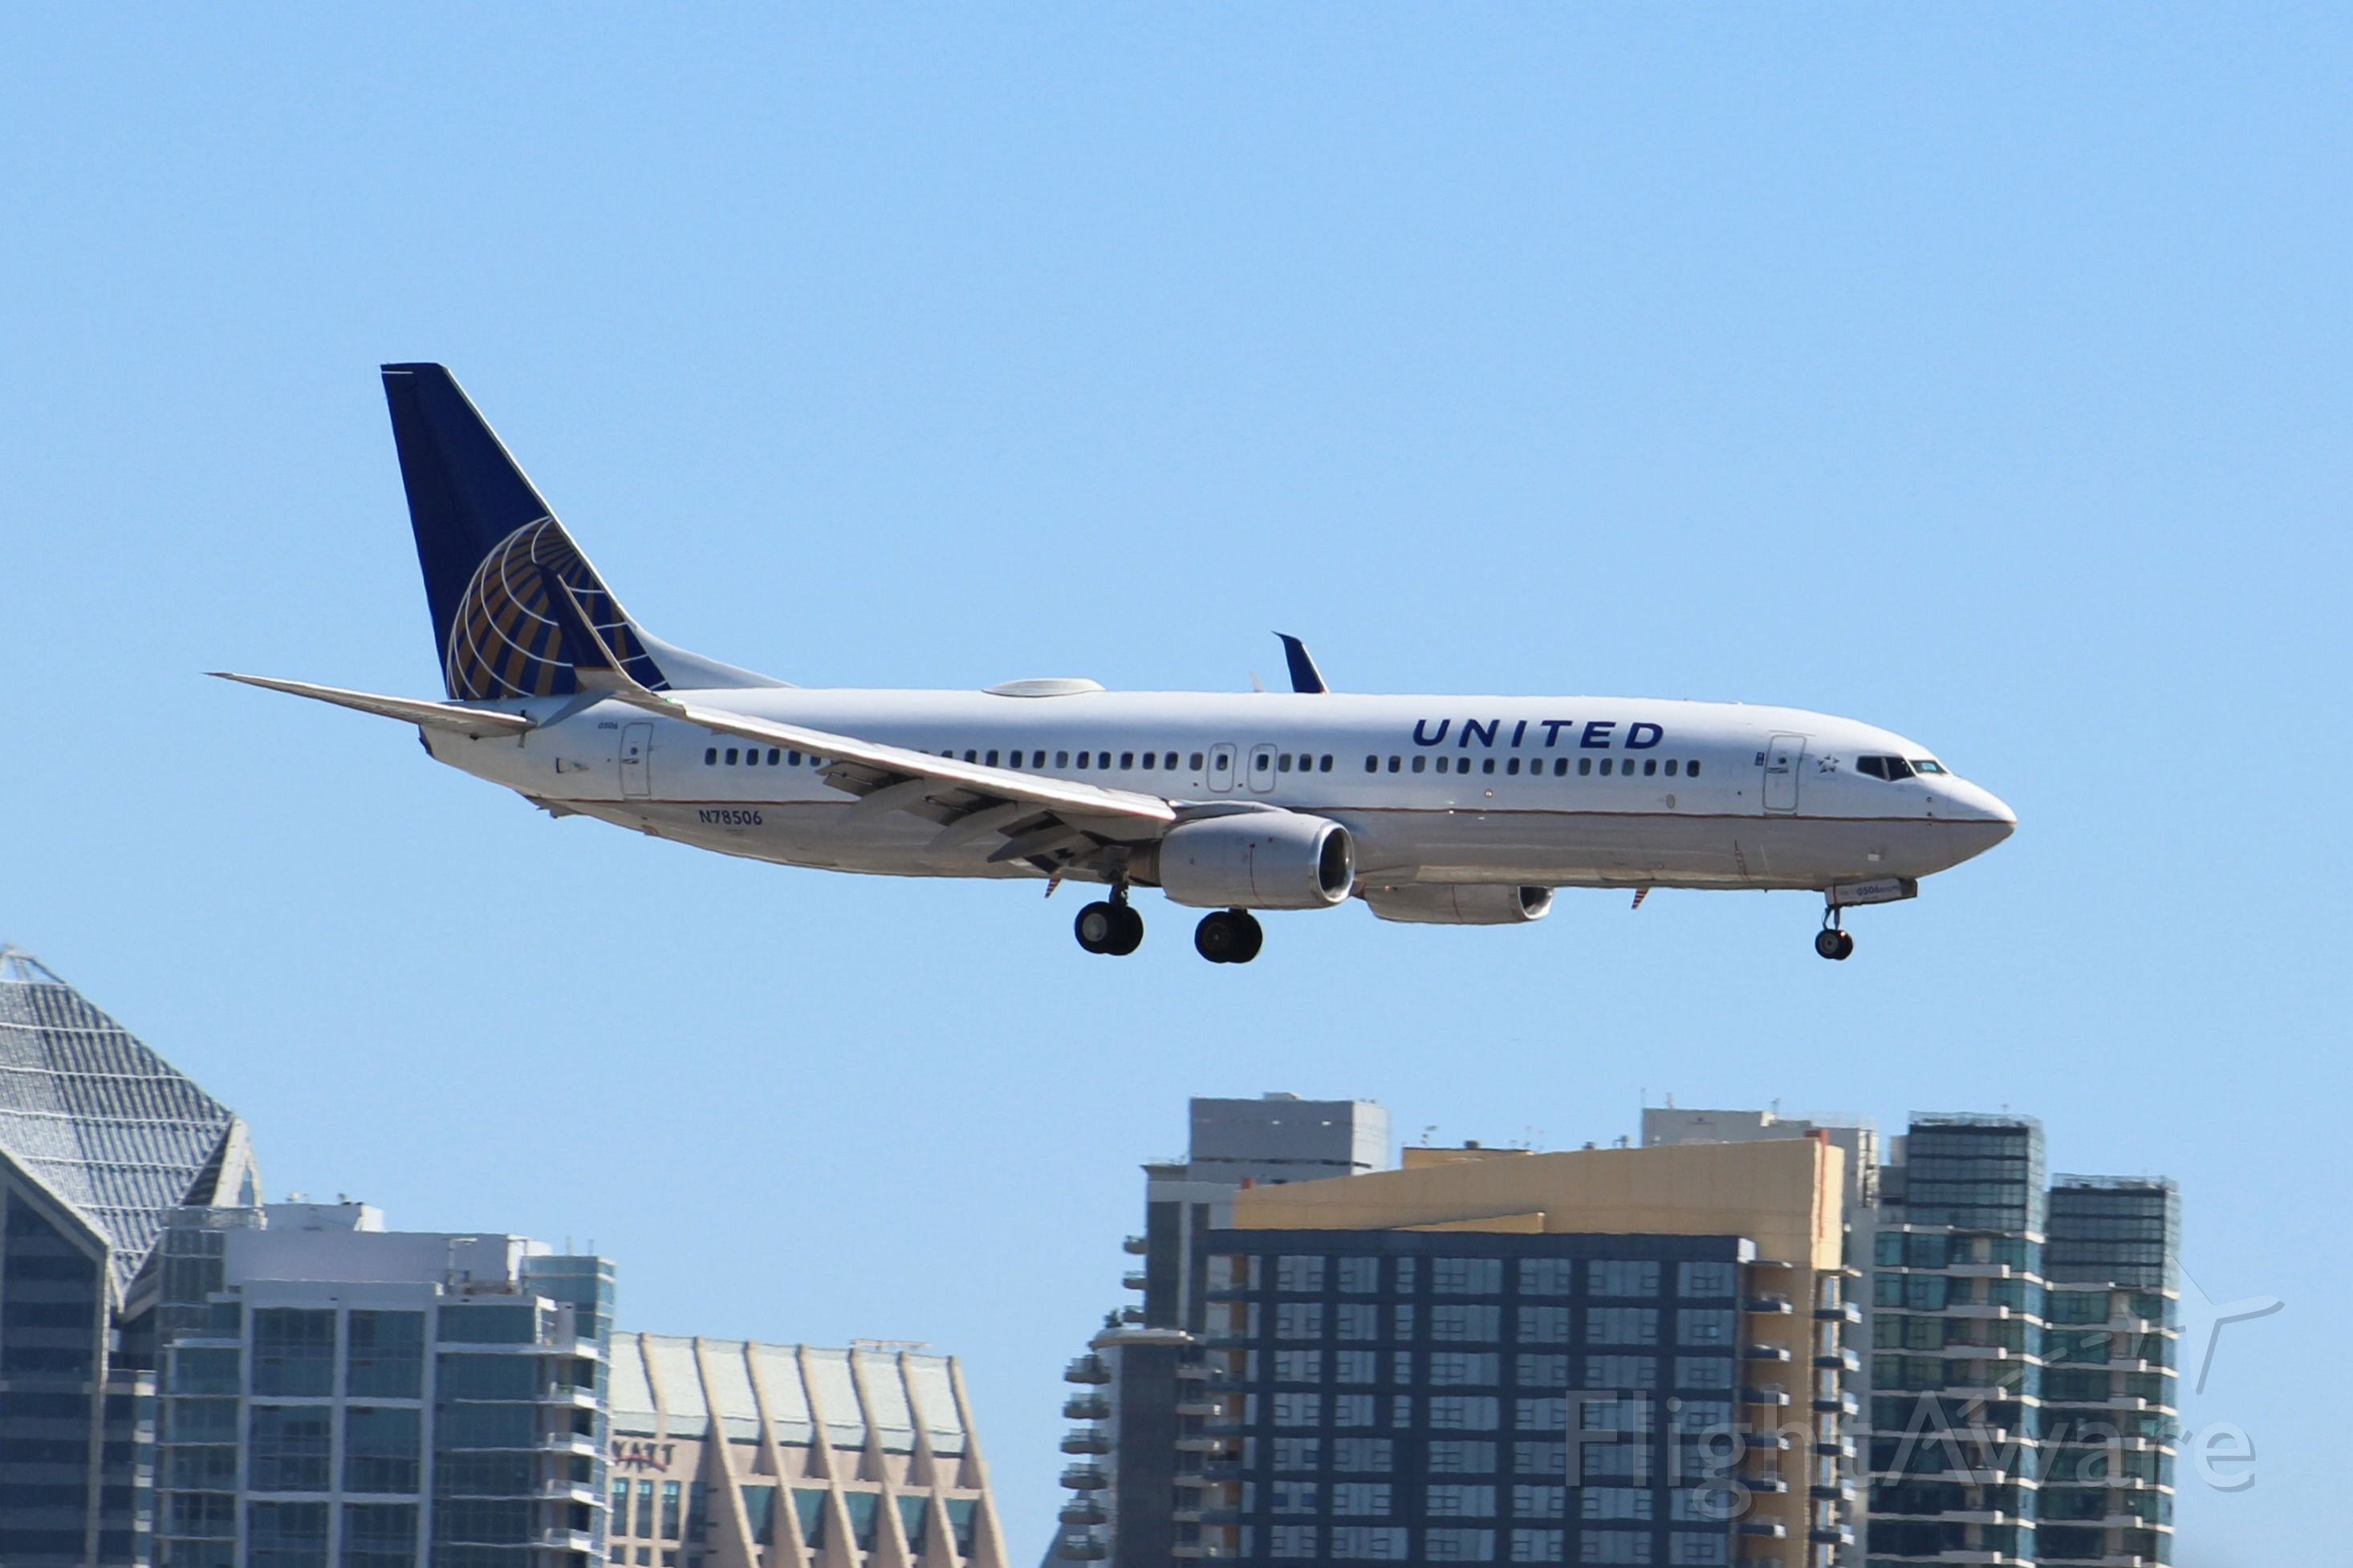 Boeing 737-800 (N78506) - Landing 27 with split scimitar wingtips. San Diego skyline visible in the background.